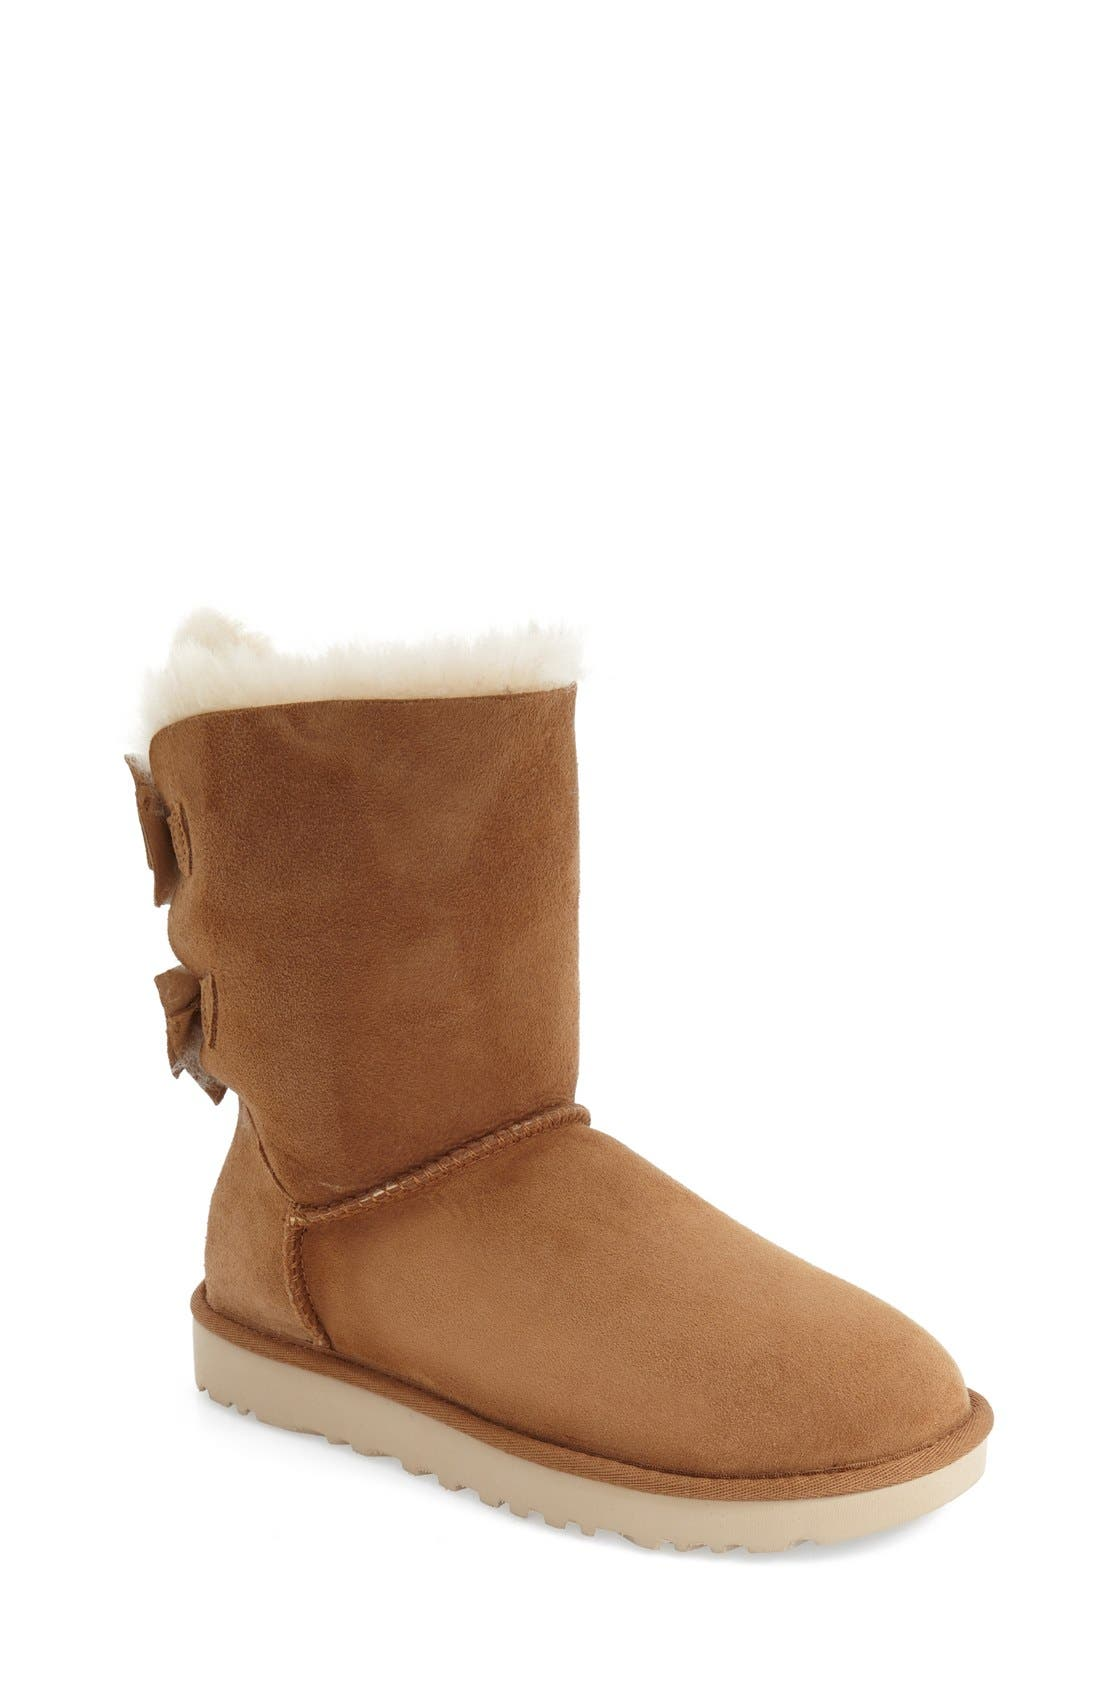 Alternate Image 1 Selected - UGG® Meilani Bow Boot (Women)